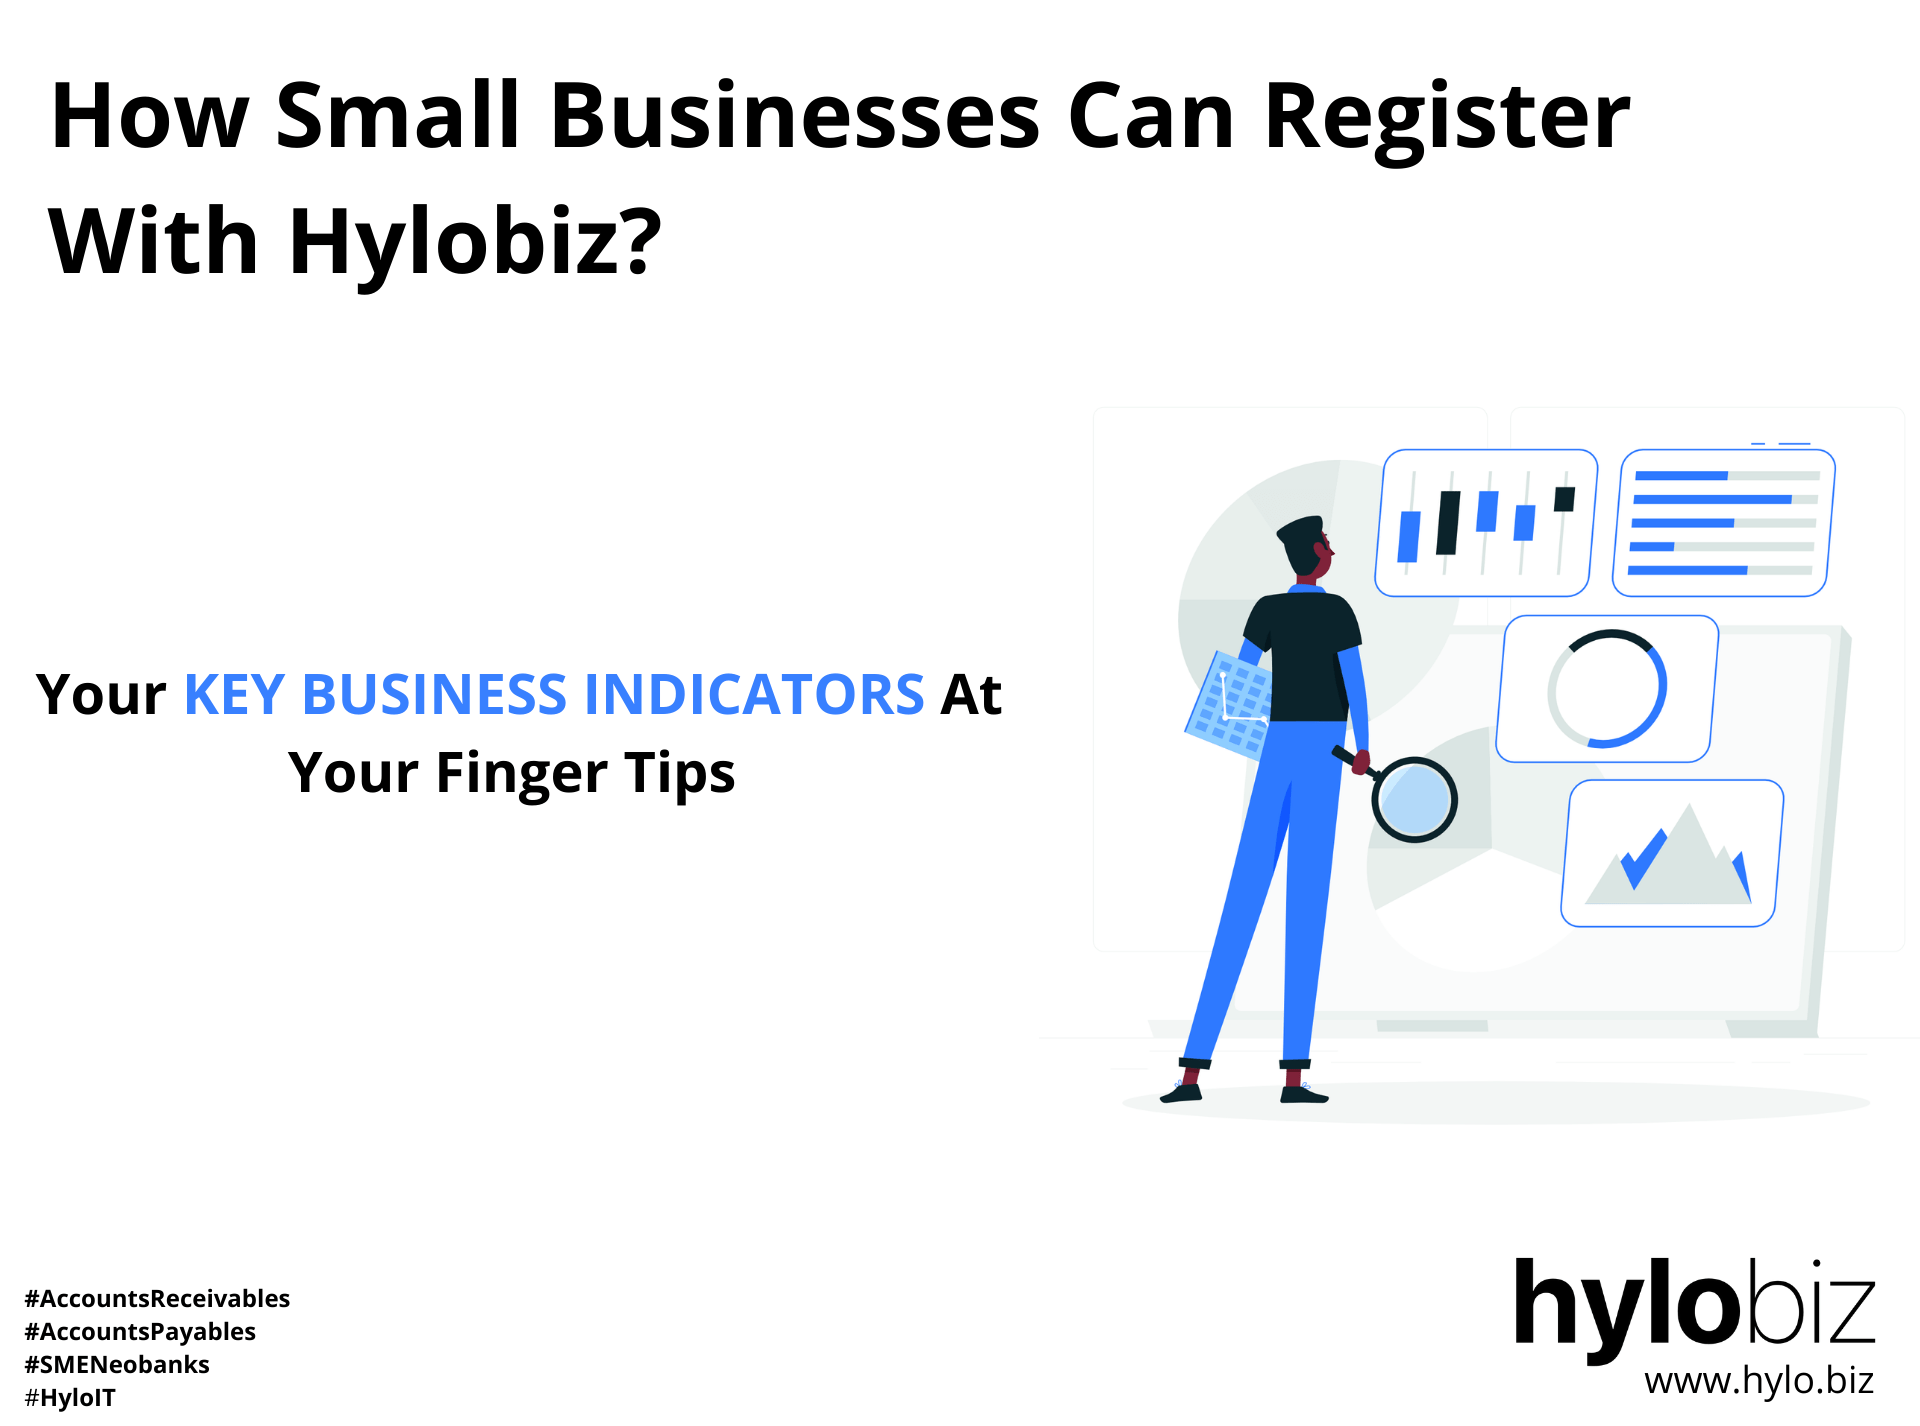 How Small Businesses Can Register With Hylobiz?